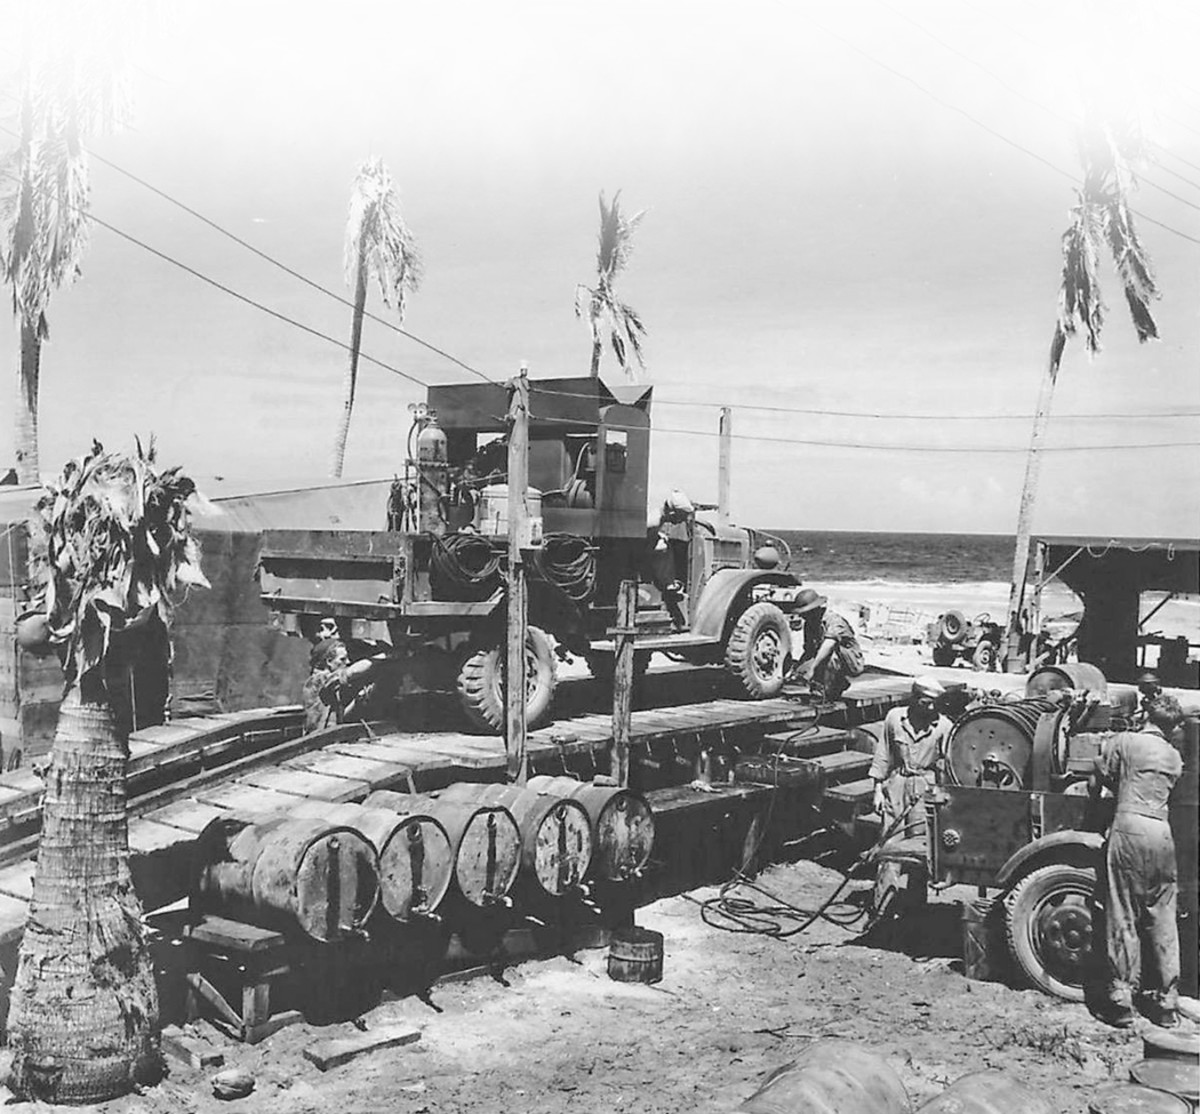 Whether it is a common chore for you or brand new, servicing your oil filter is essential and not something you can overlook. These WWII Seabees on Eniwetok realized how important it was to service their vehicles, so they created this clever, makeshift grease rack.